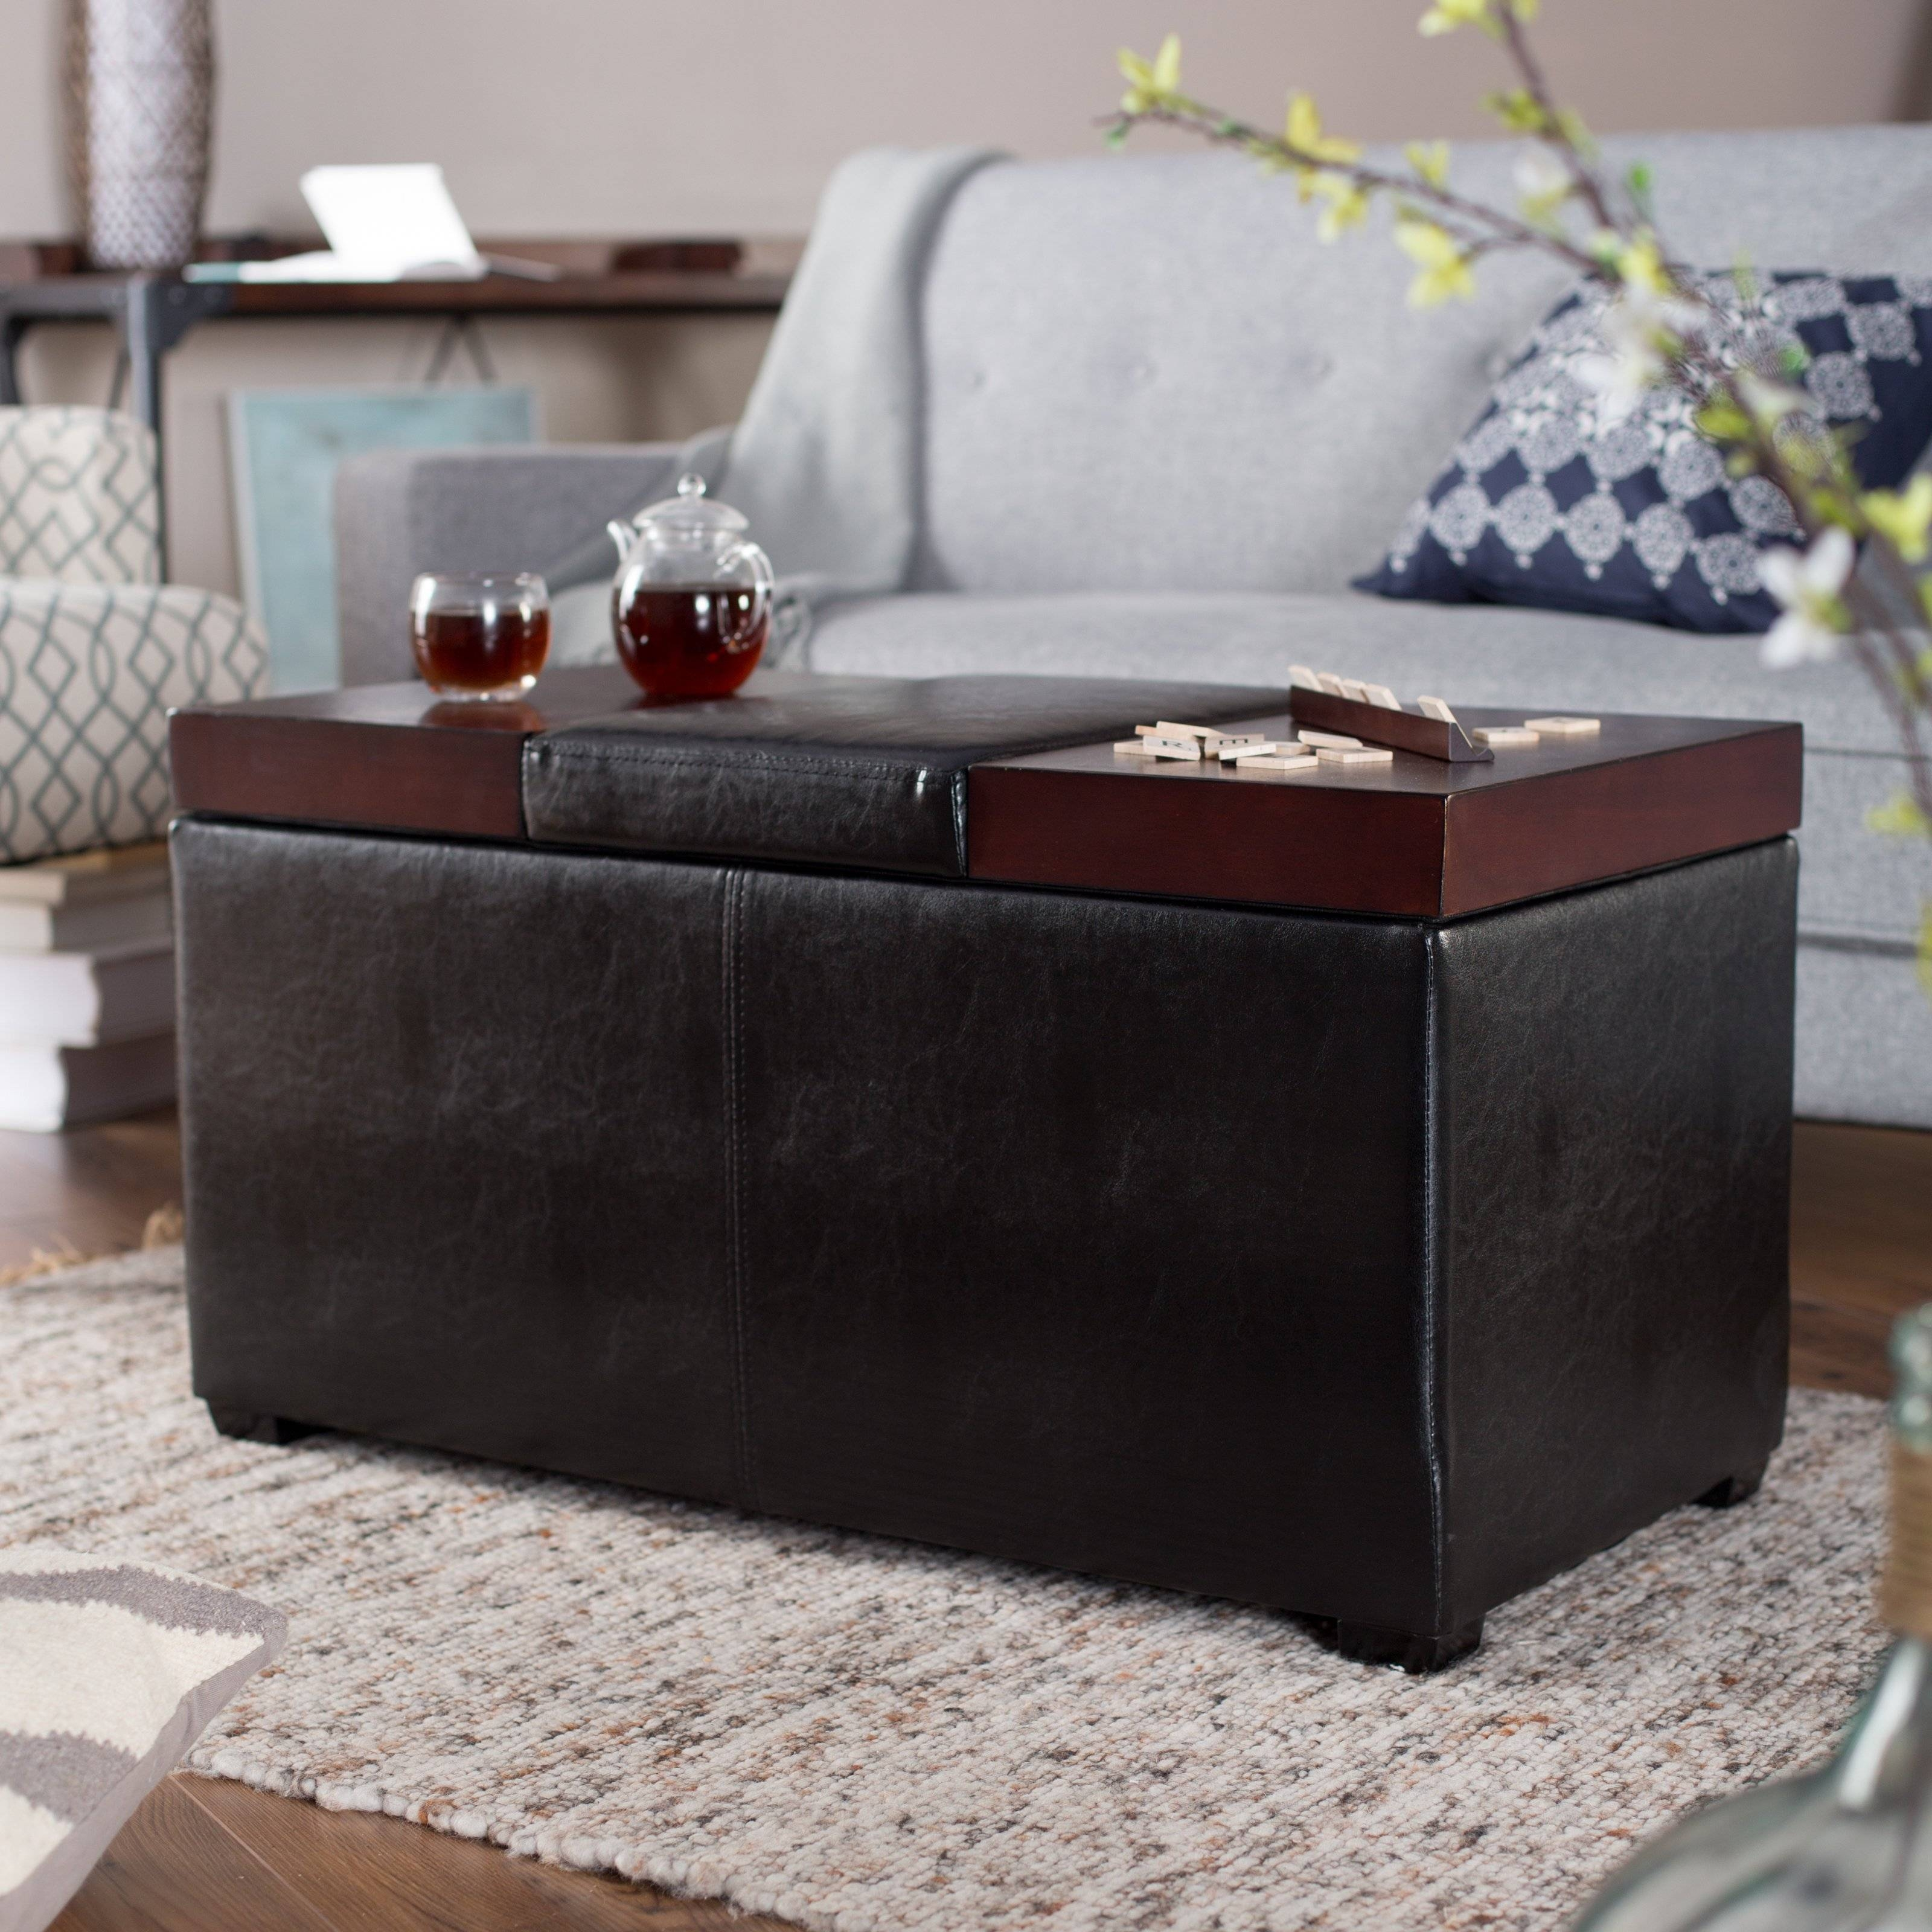 Mainstays Lift-Top Coffee Table, Multiple Colors - Walmart in Raisable Coffee Tables (Image 27 of 30)